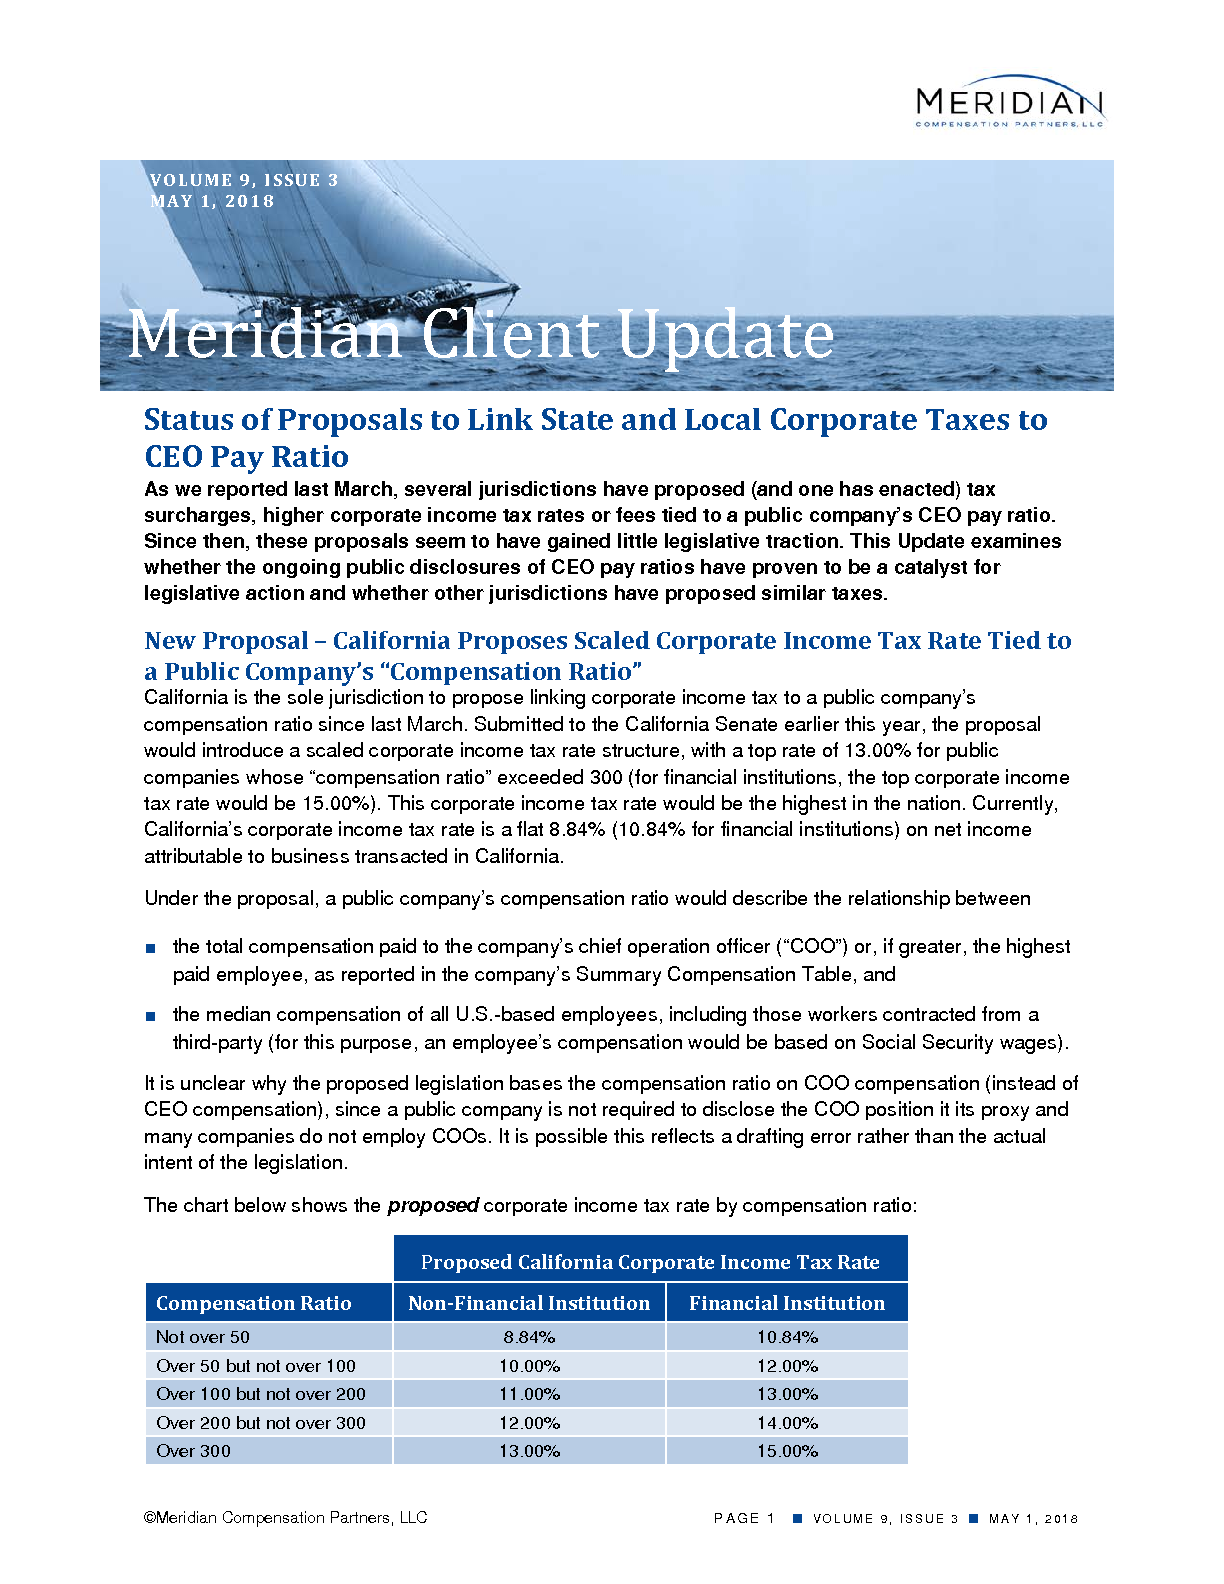 Status of Proposals to Link State and Local Corporate Taxes to CEO Pay Ratio (PDF)